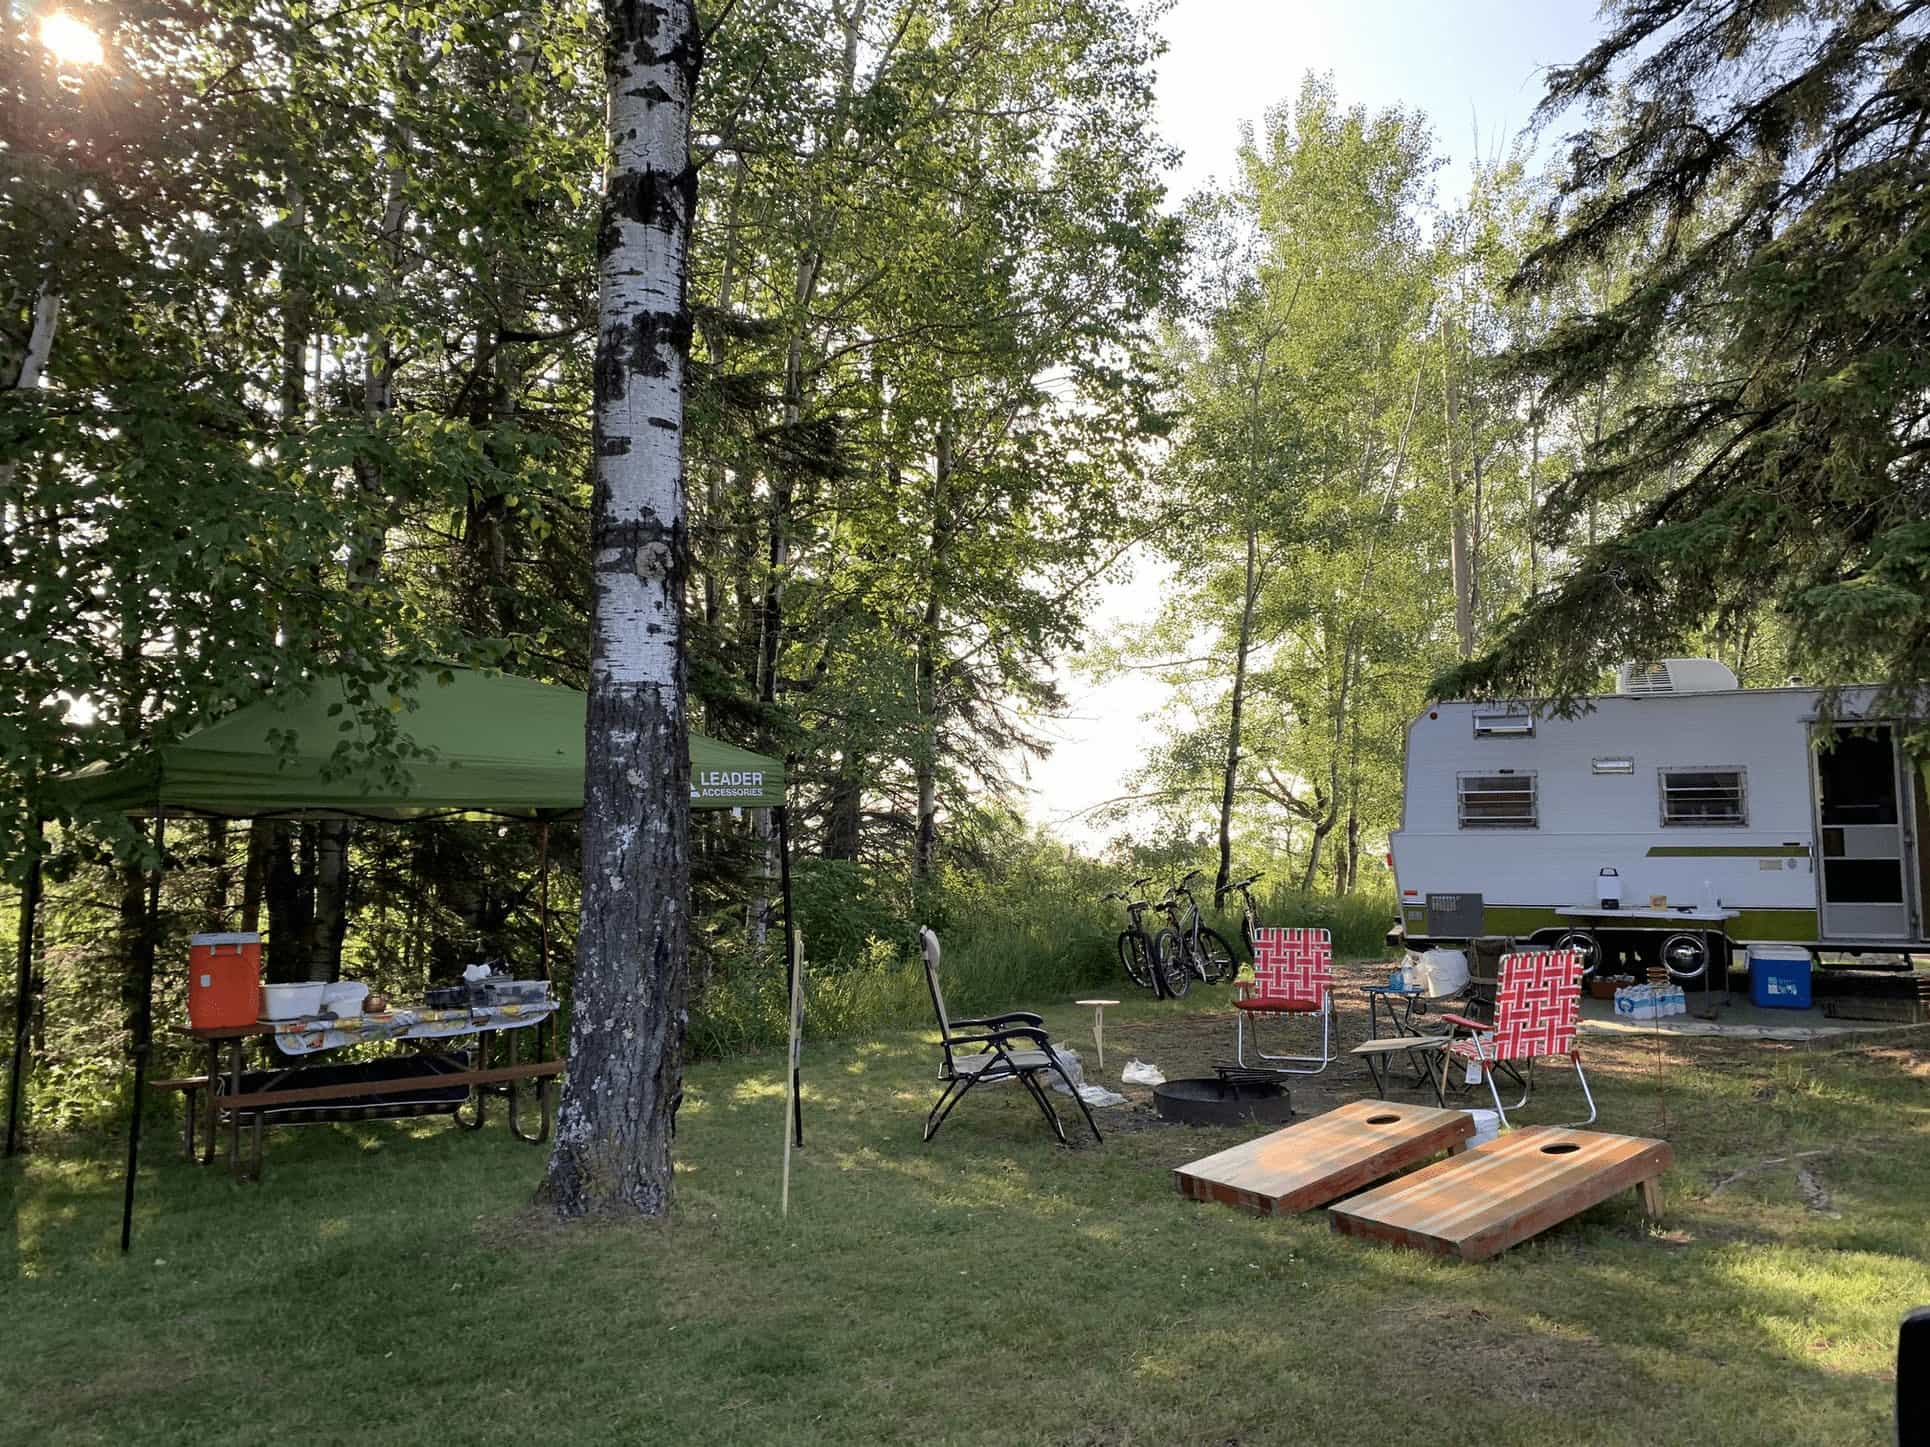 Trailer parked beside Lake Superior in a campground near Duluth complete with awning, camp chairs, and games.